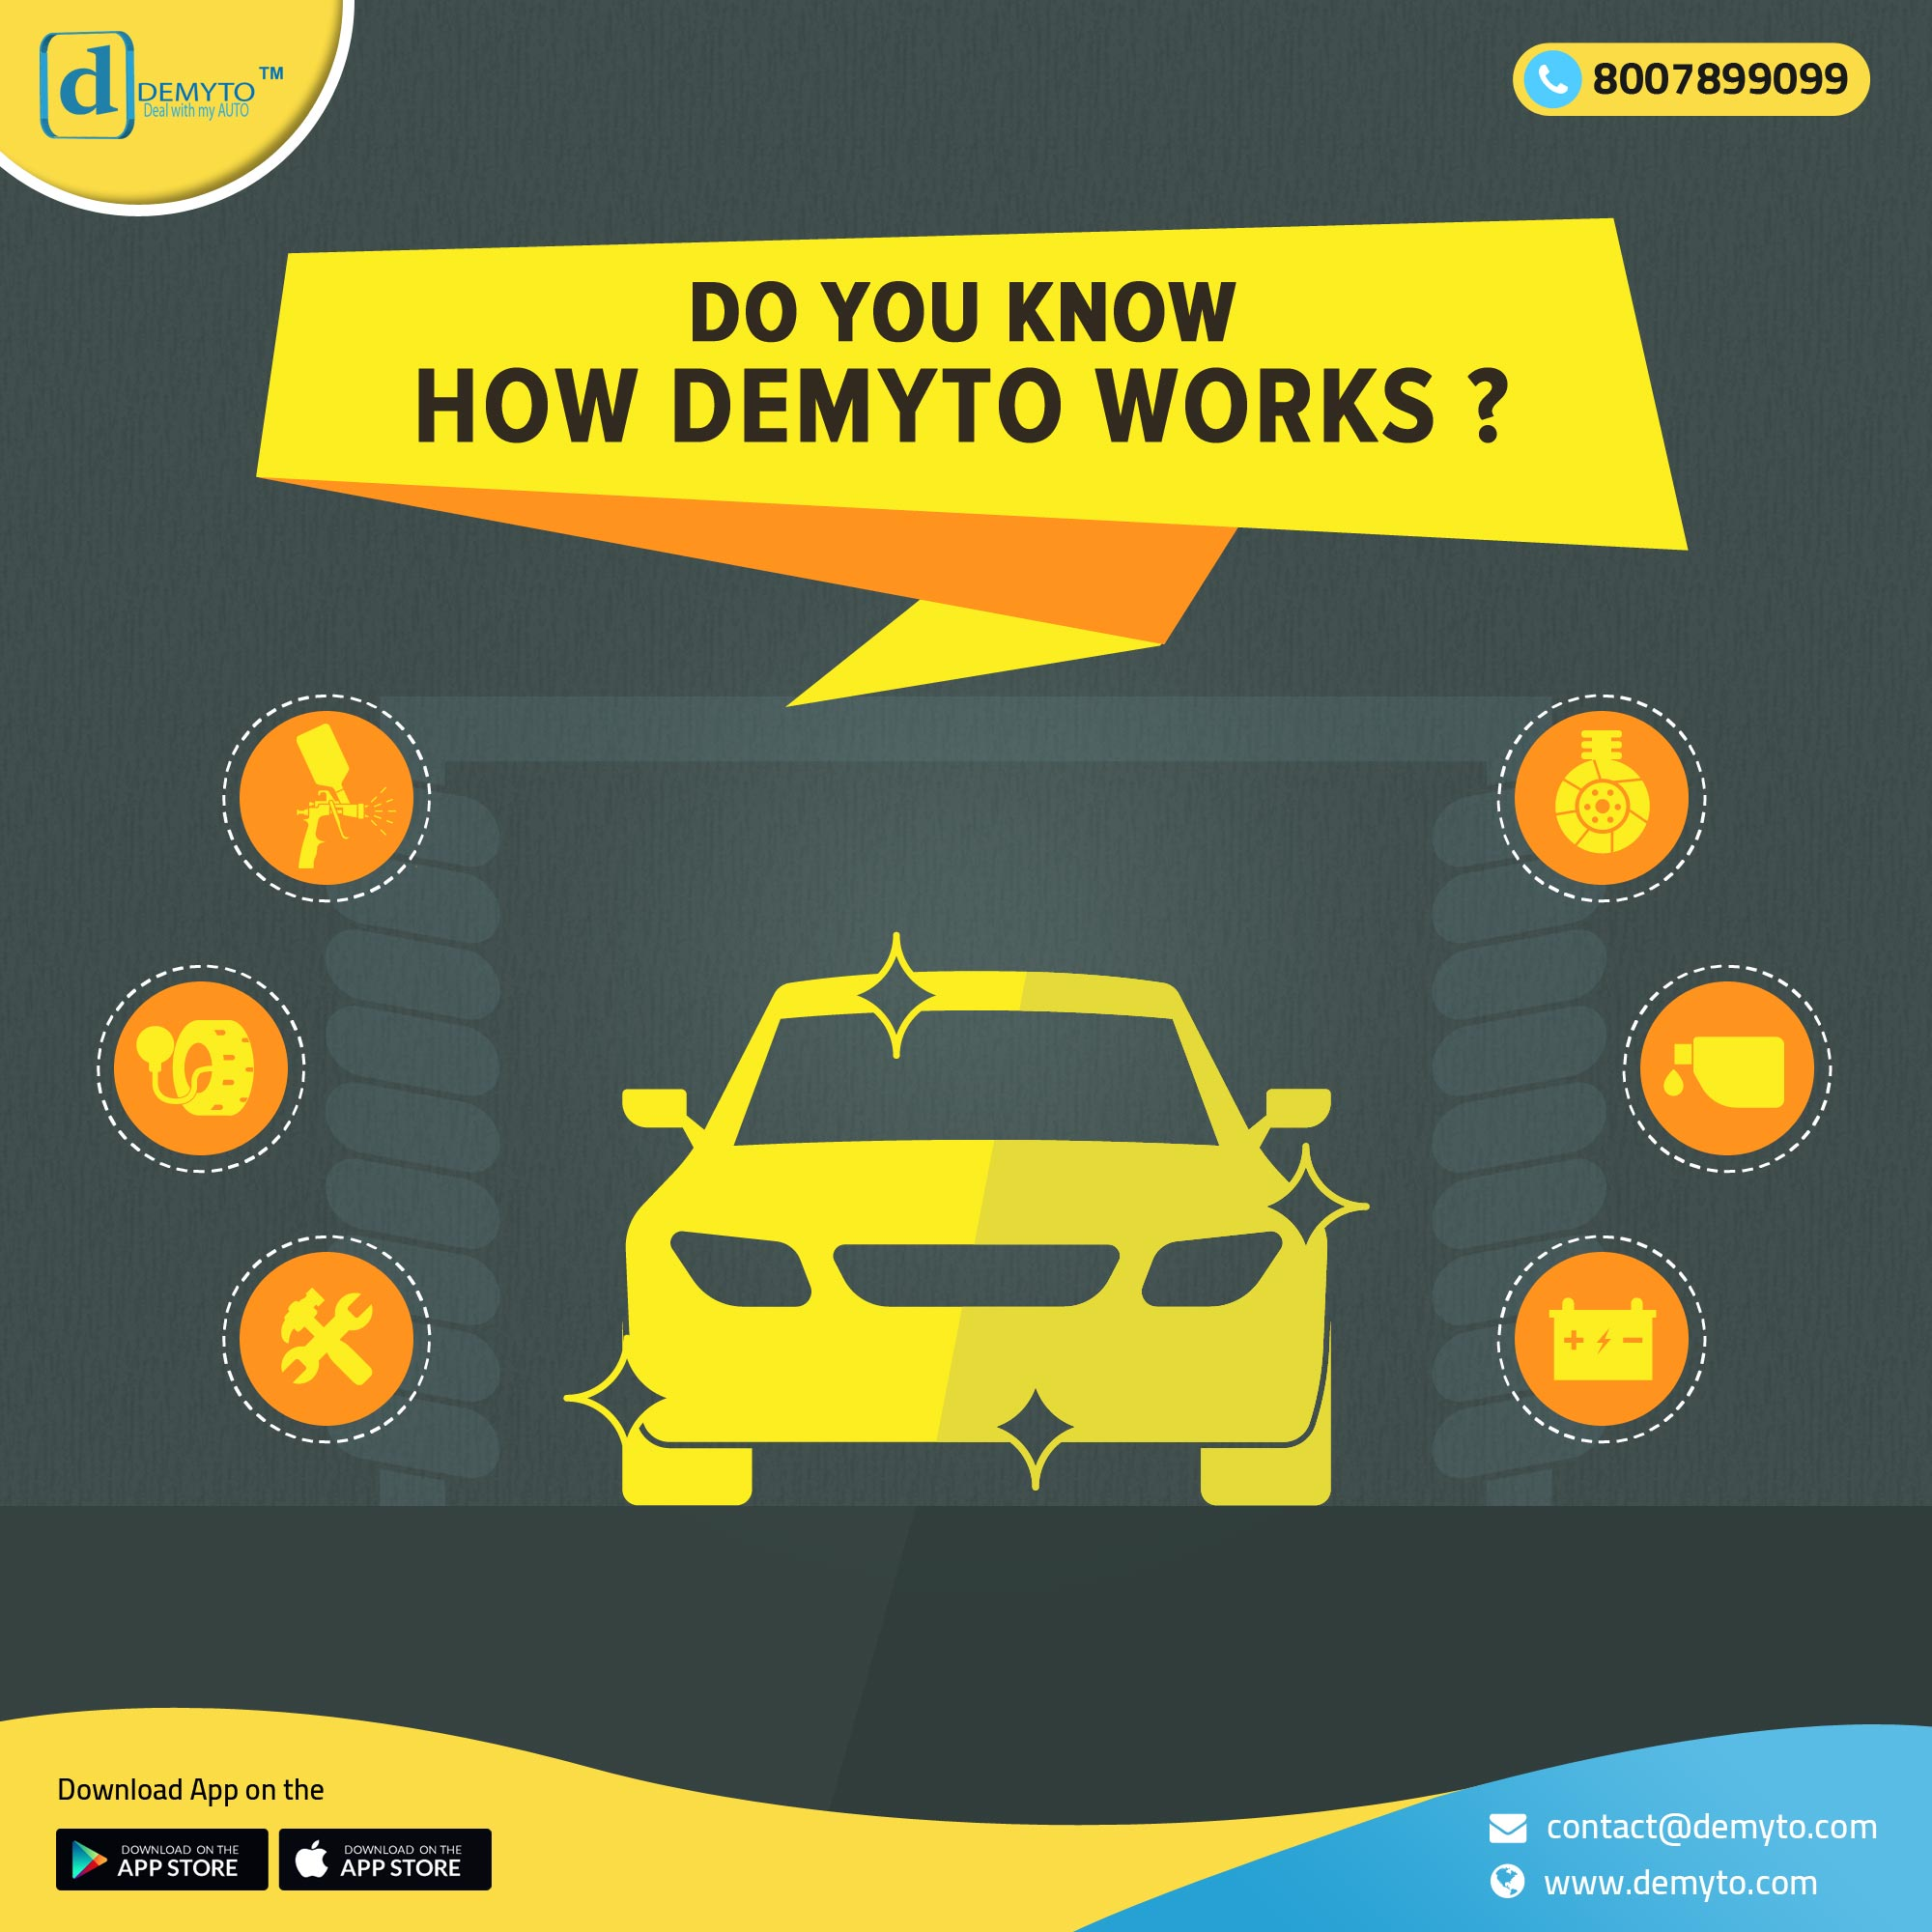 How does DEMYTO work?